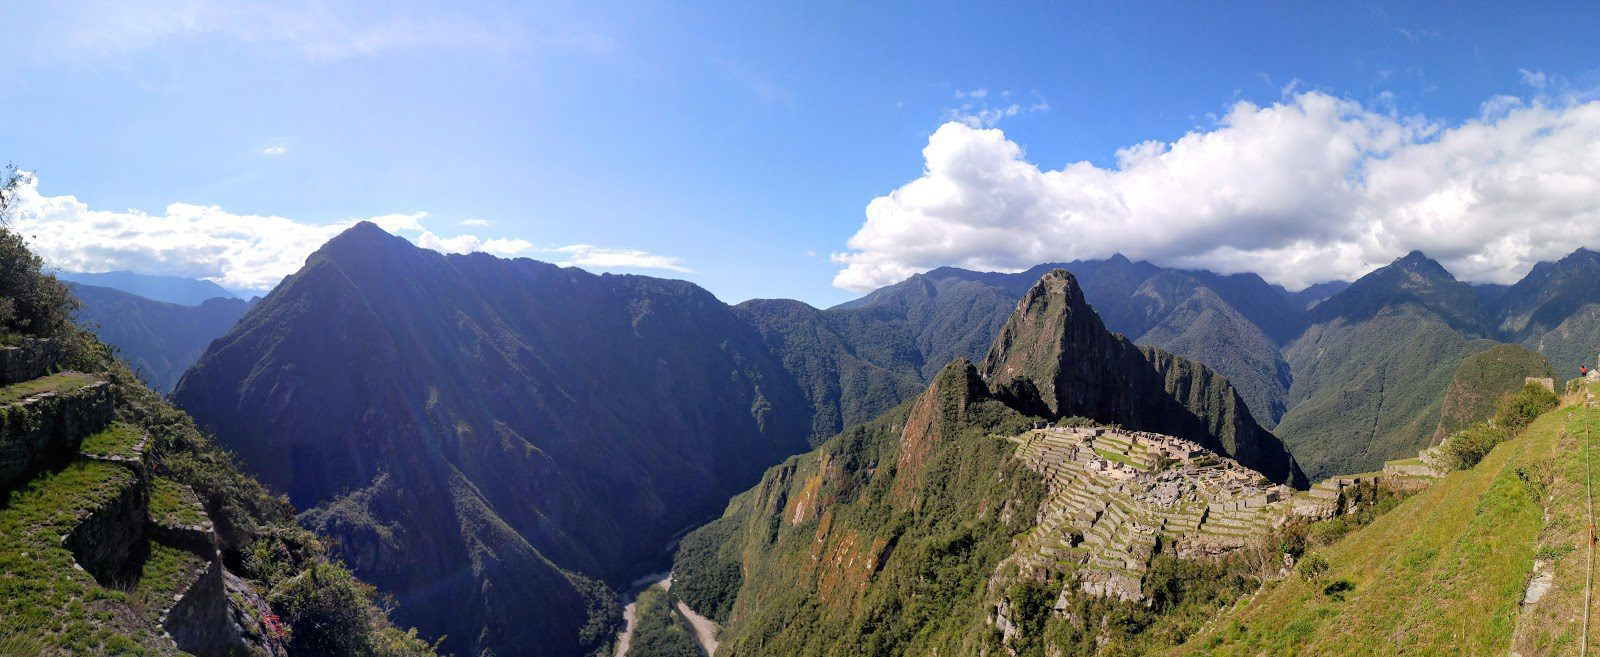 Machu Picchu seen on this Peru trip